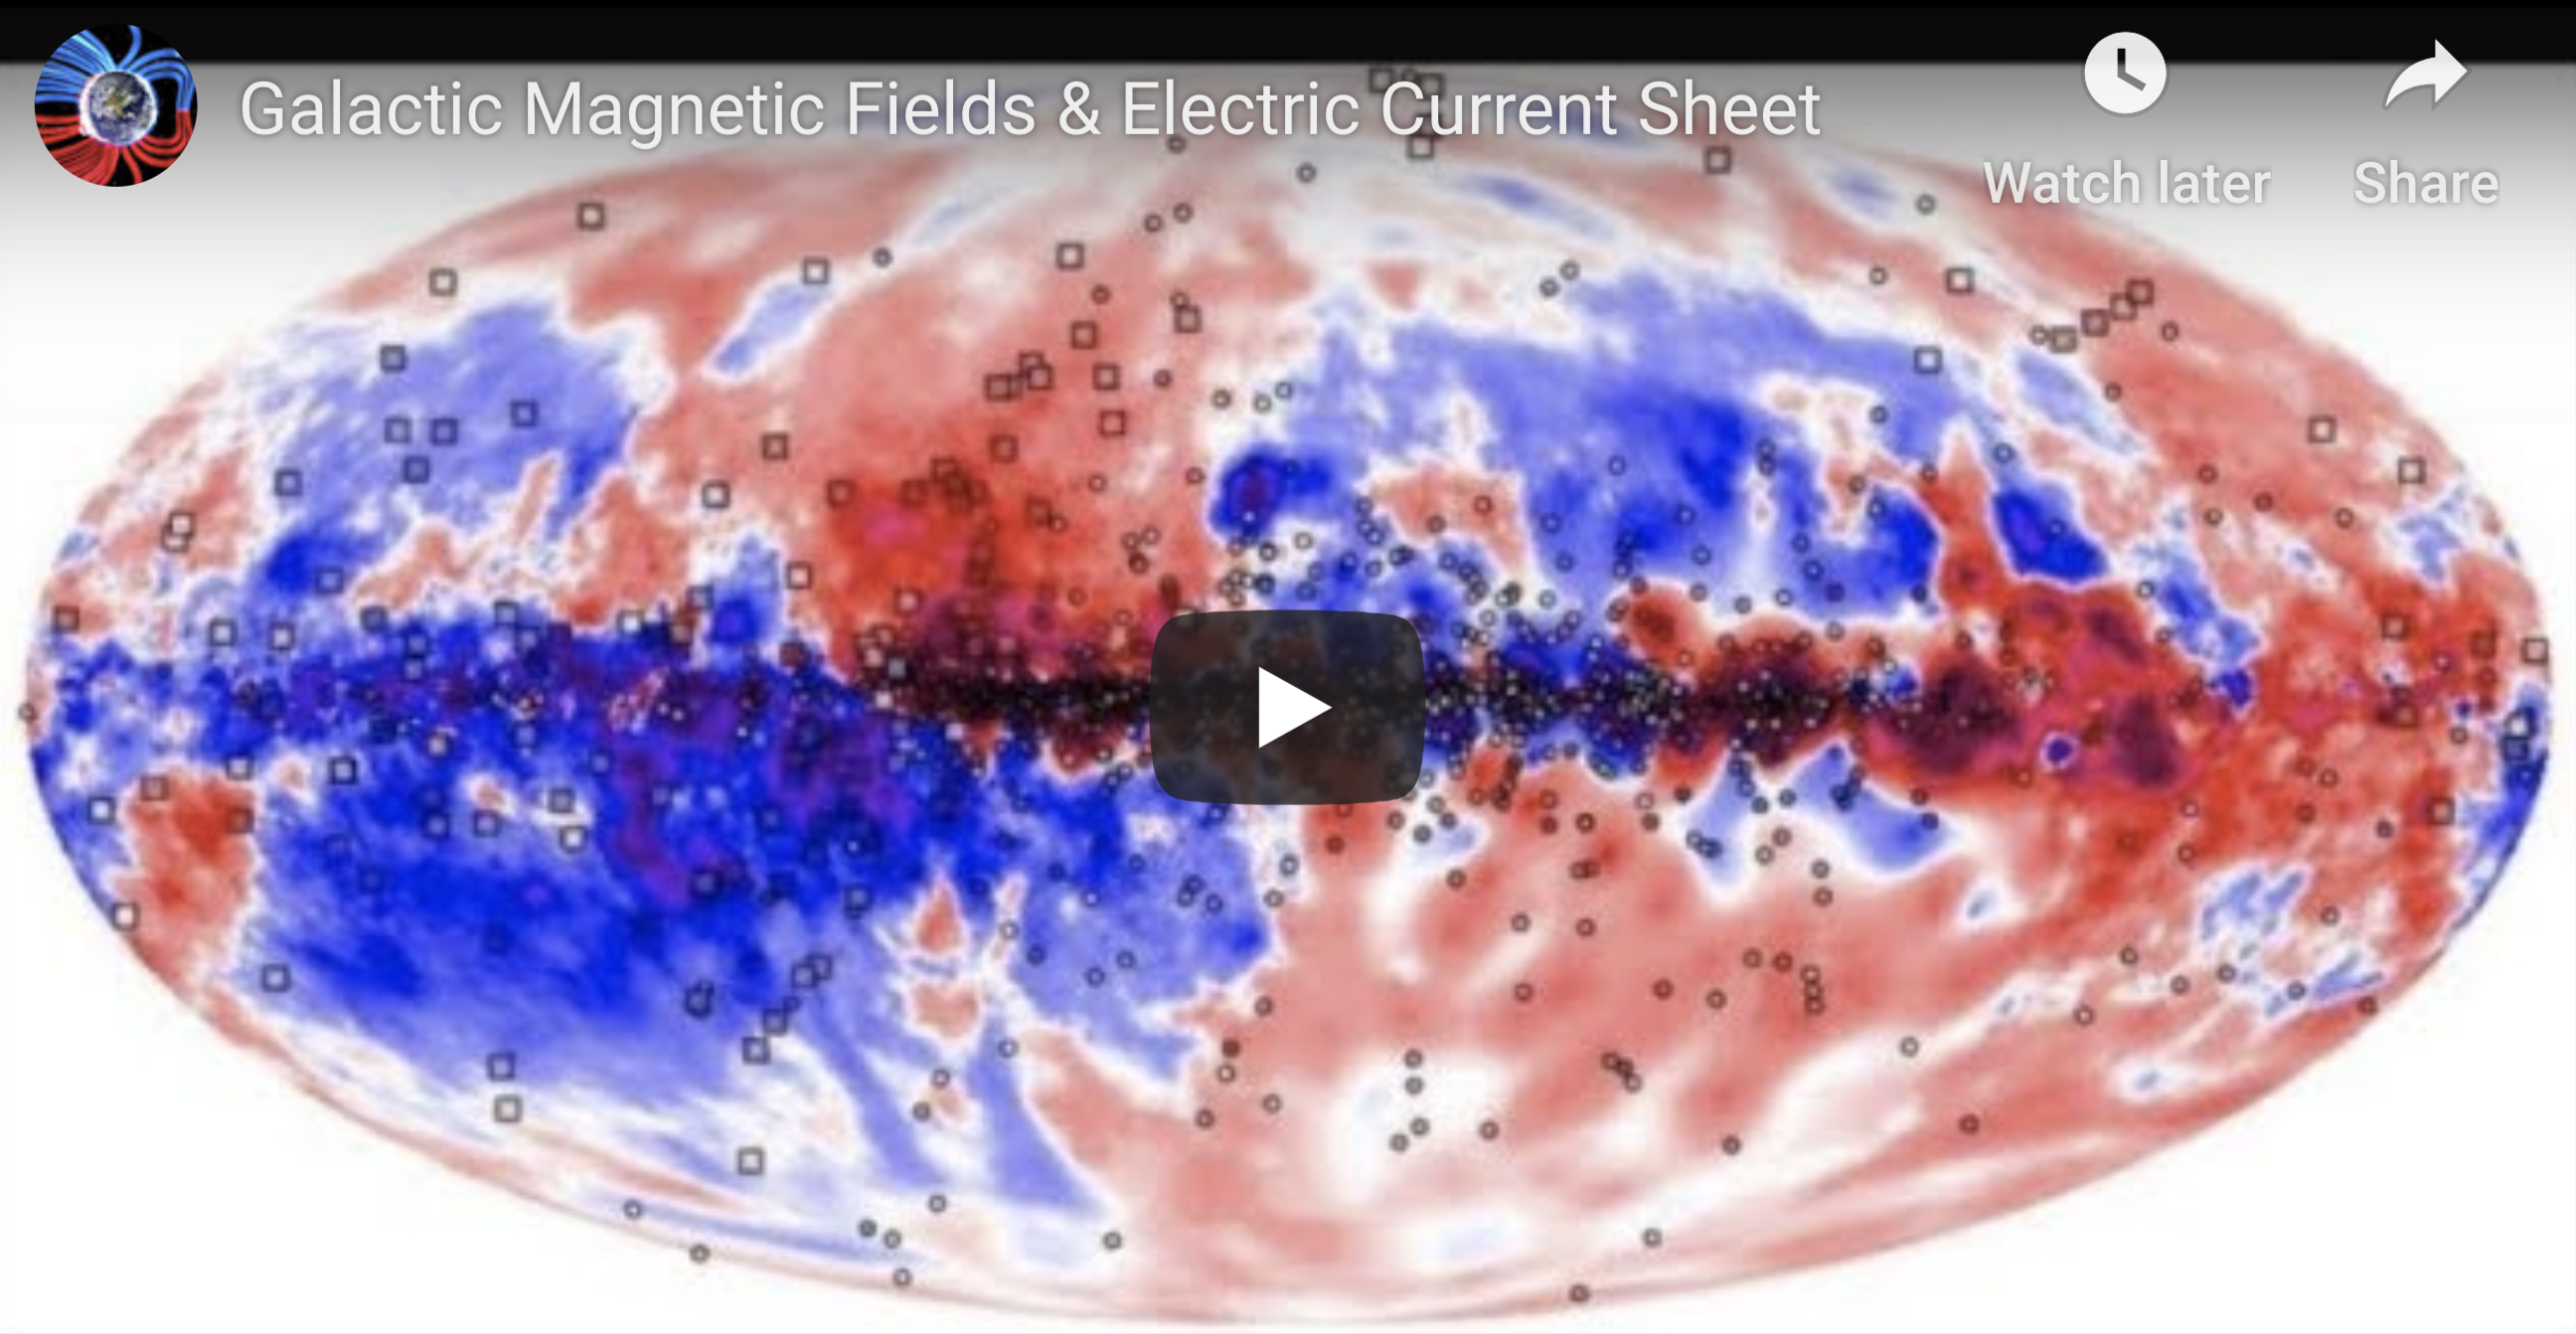 Galactic Magnetic Fields & Electric Current Sheet 1 13 2020